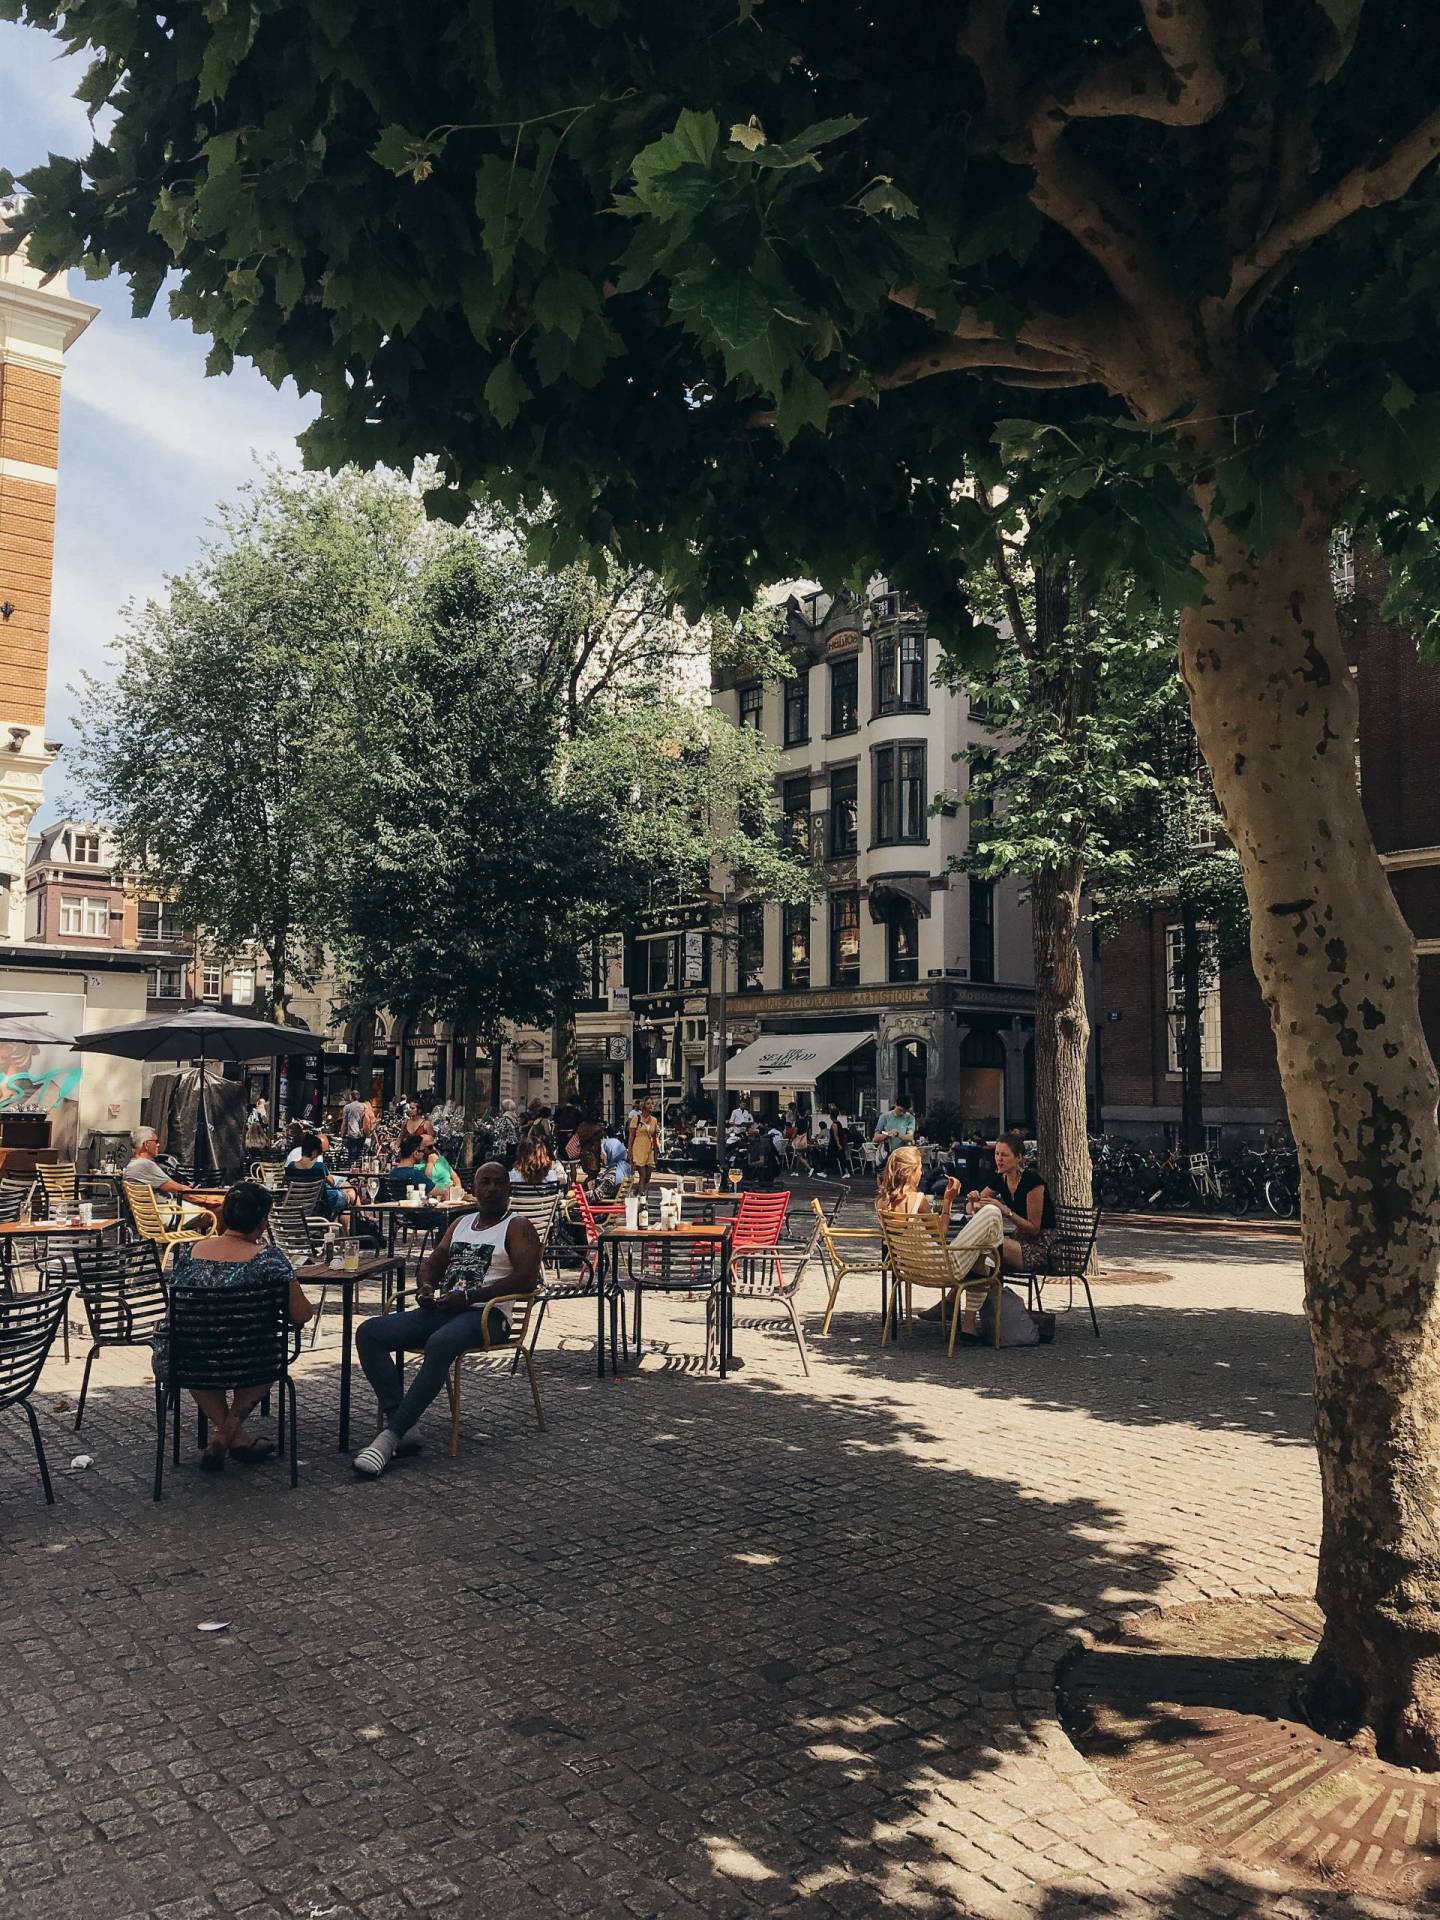 That European Summer vibe... the kind of joy and ease I need to bring to my everyday life! Amsterdam quickly became one of my favorite places I've ever visited for so many reasons; click through for everything we did, where we ate, and the hotel we loved so much!